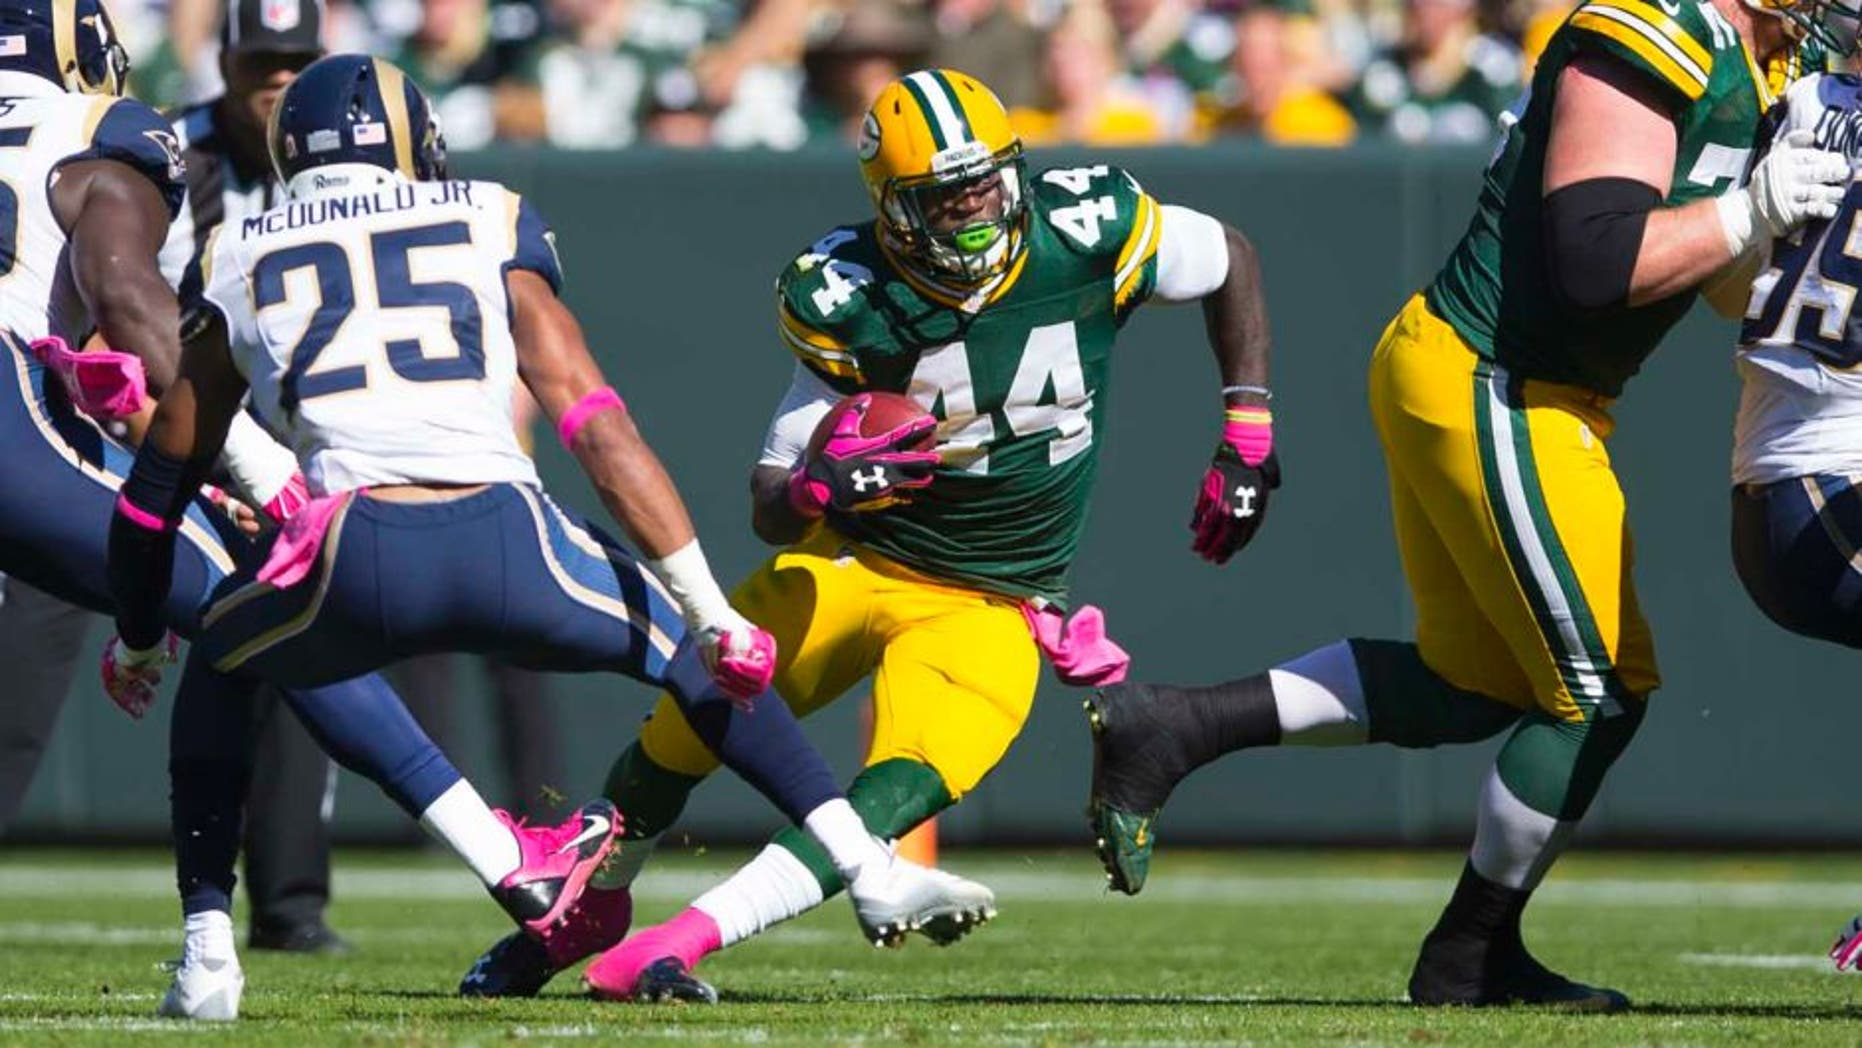 Green Bay Packers running back James Starks rushes with the football during the first quarter against the St. Louis Rams at Lambeau Field in Green Bay, Wis., on Sunday, Oct. 11, 2015.